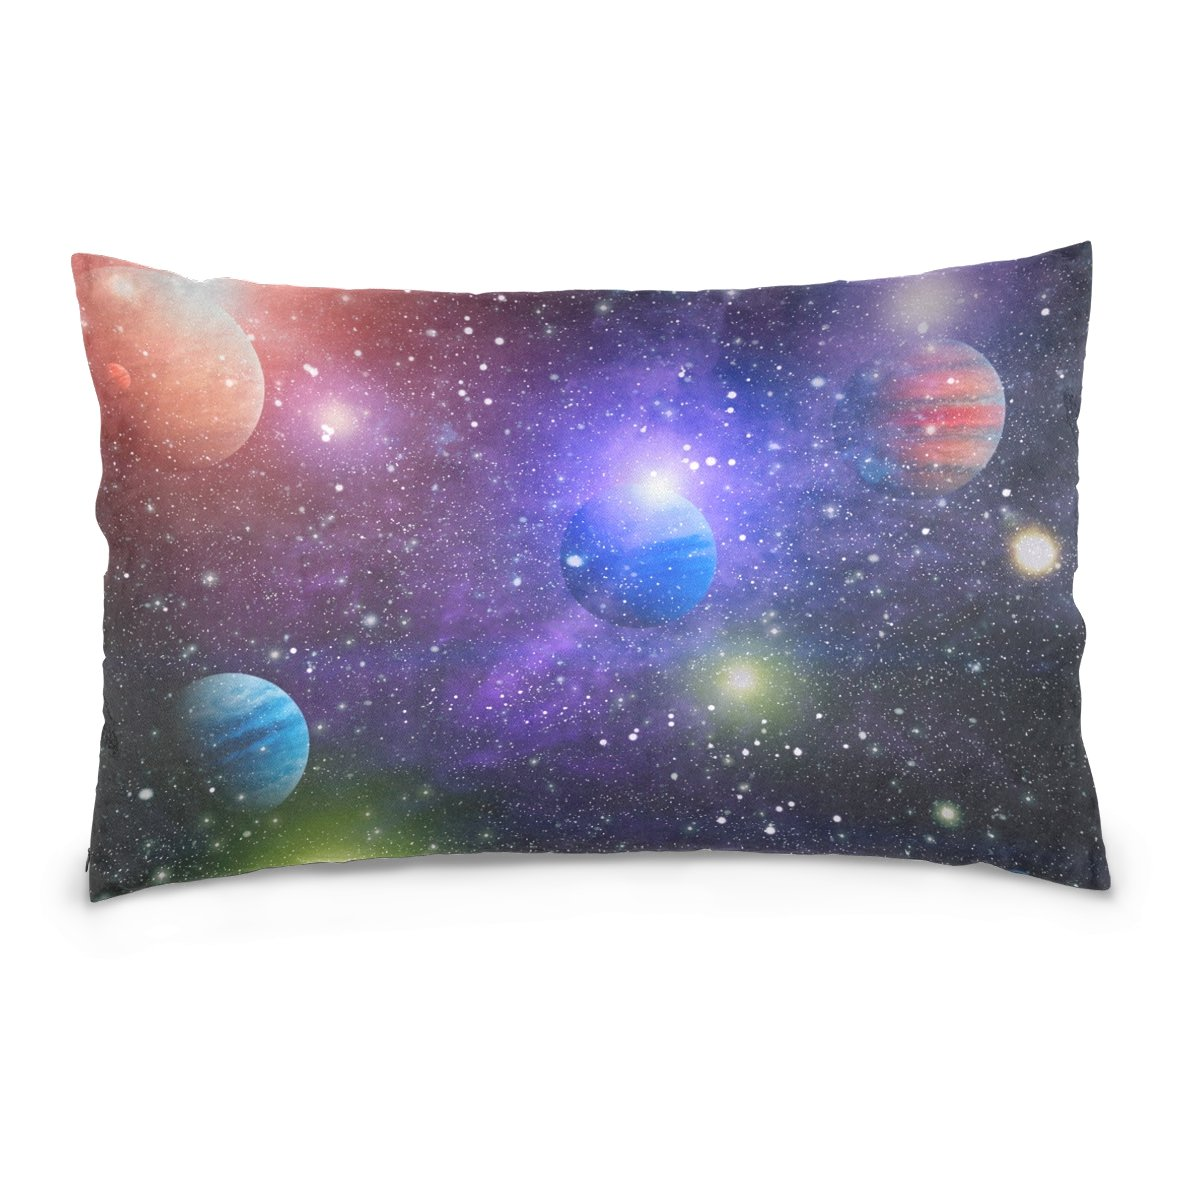 ALAZA Nebula and Galaxy in Outer Space Solar System Cotton Lint Pillow Case,Double-sided Printing Home Decor Pillowcase Size 16''x24'',for Bedroom Women Girl Boy